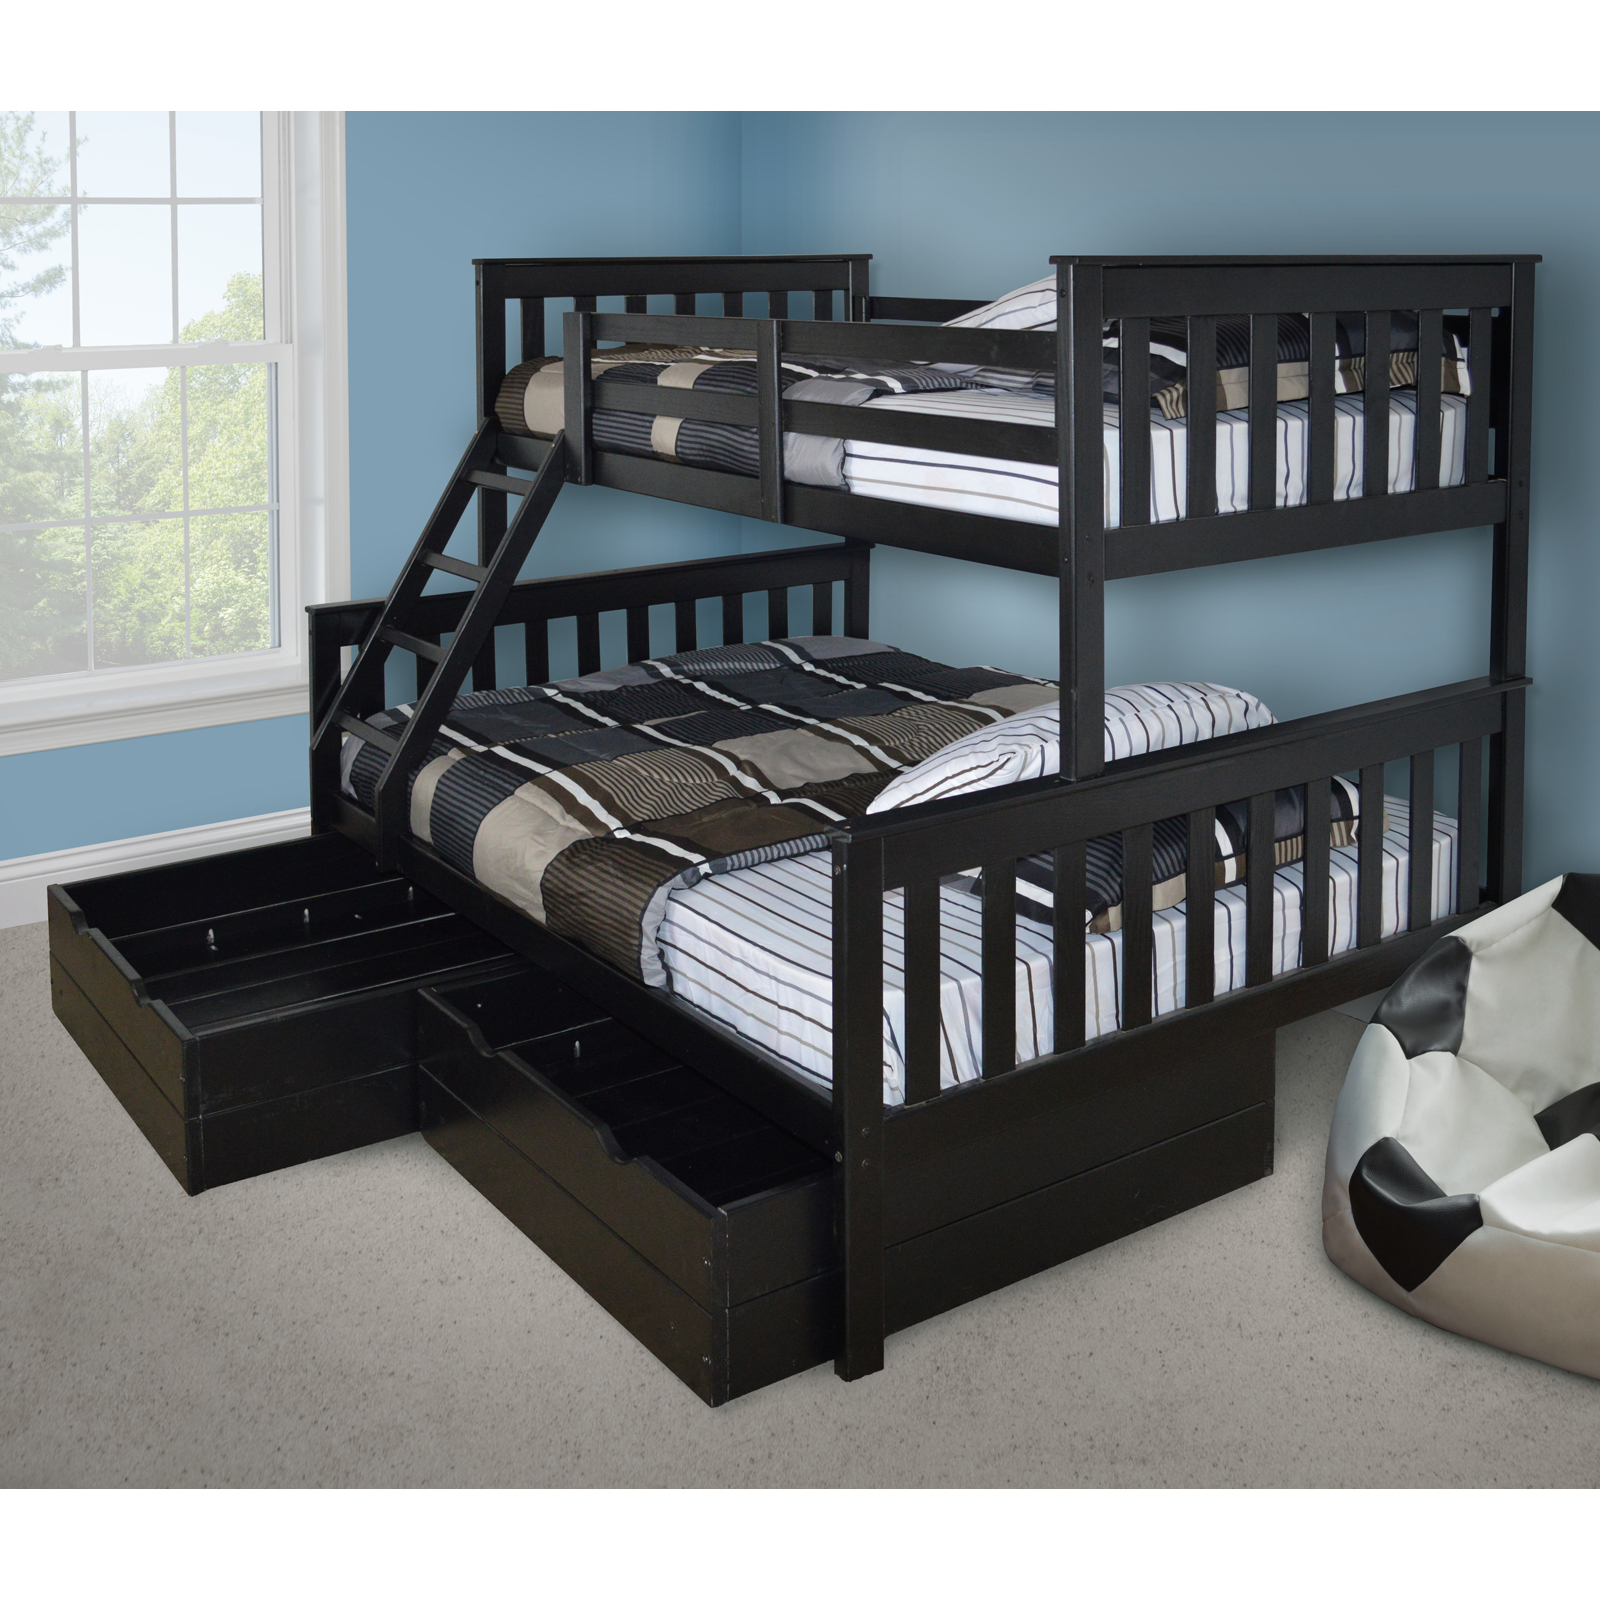 VersaLoft Mission Twin Over Full Bunk Bed